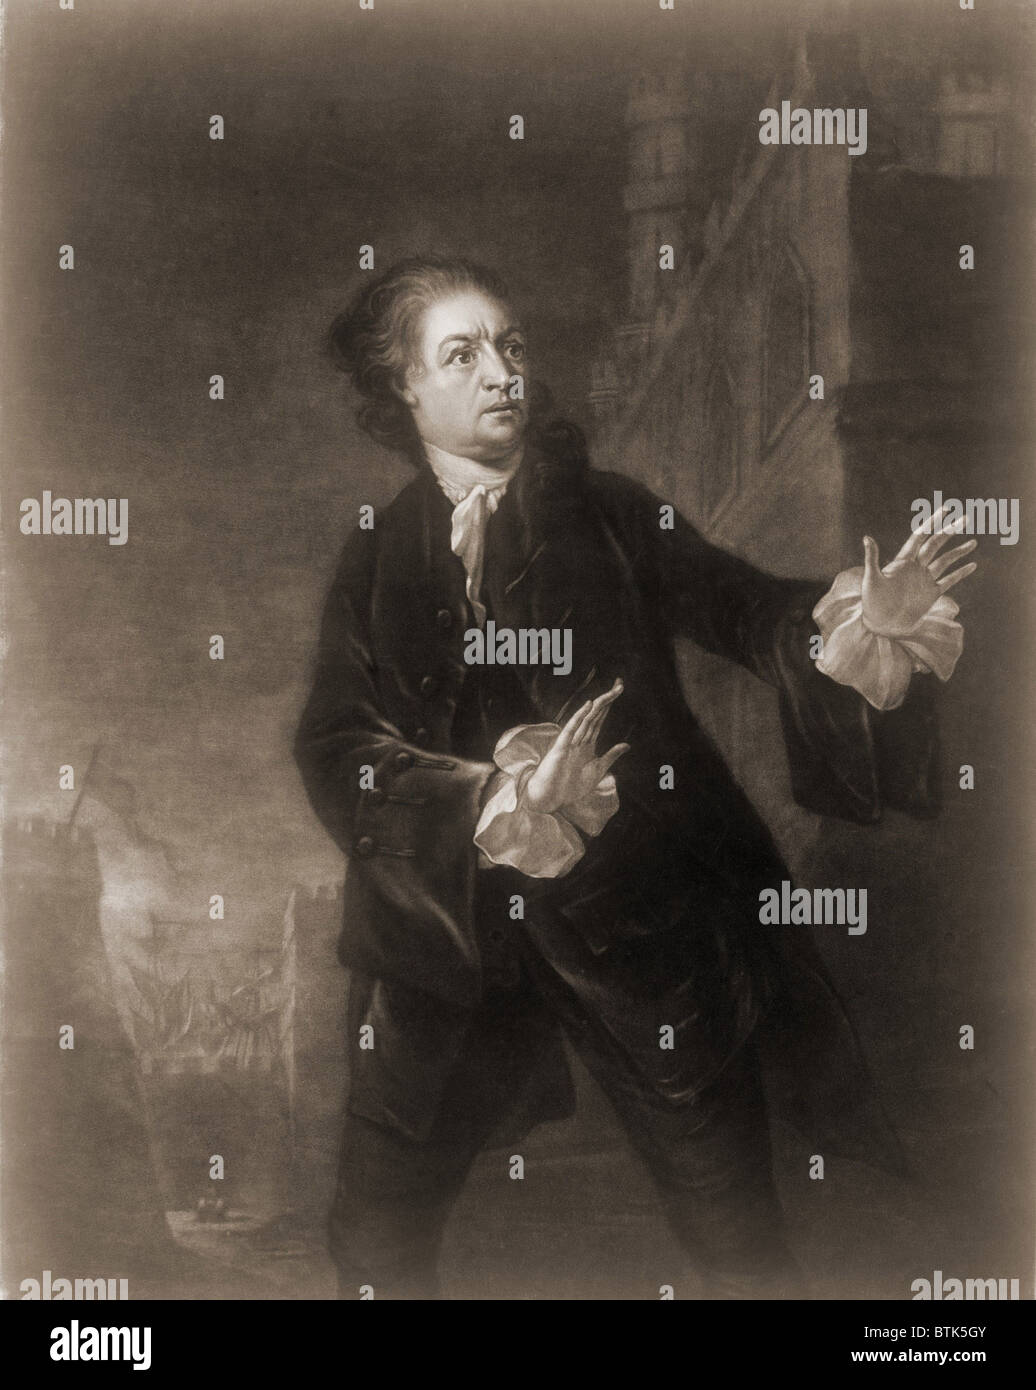 David Garrick (1717-1779), English actor, playwright, and producer in the role of Hamlet, Act 1, Scene 4. 1754 engraving. - Stock Image